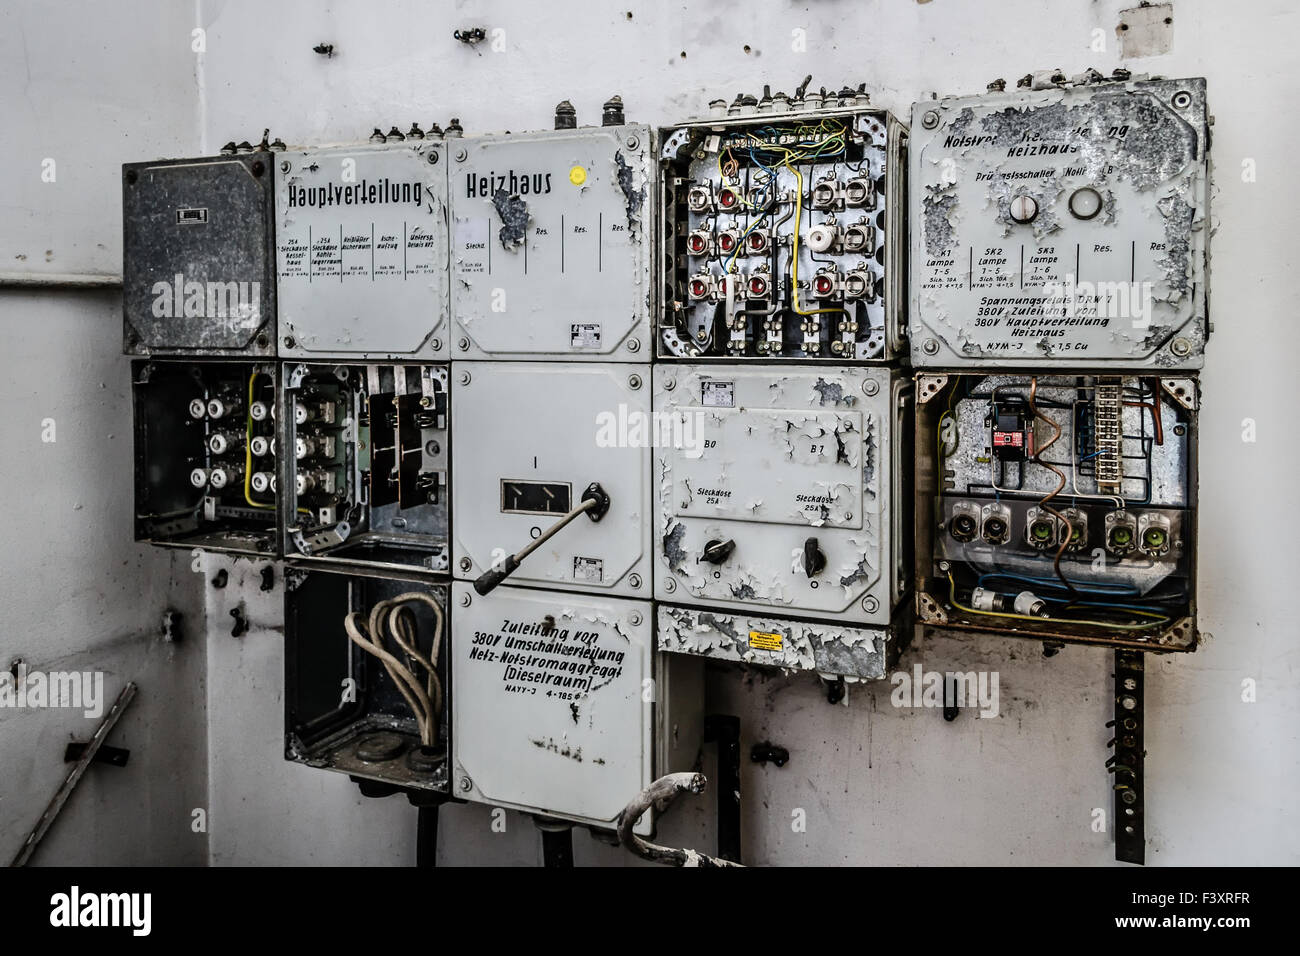 old fuse box stock photo 88485035 alamy rh alamy com old fuse box montreal old fuse box problems